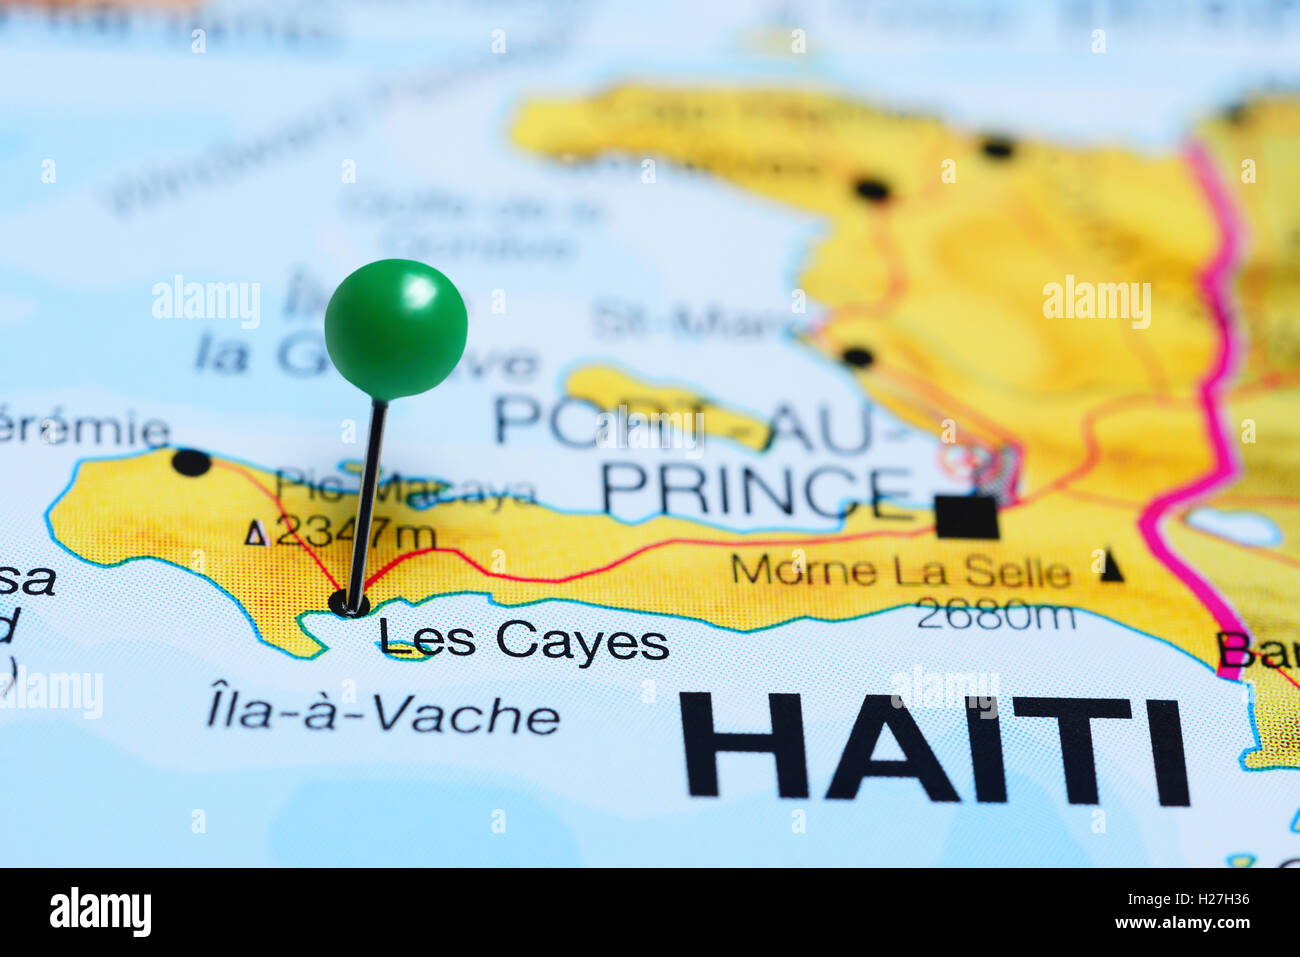 Les Cayes pinned on a map of Haiti Stock Photo 121868970 Alamy